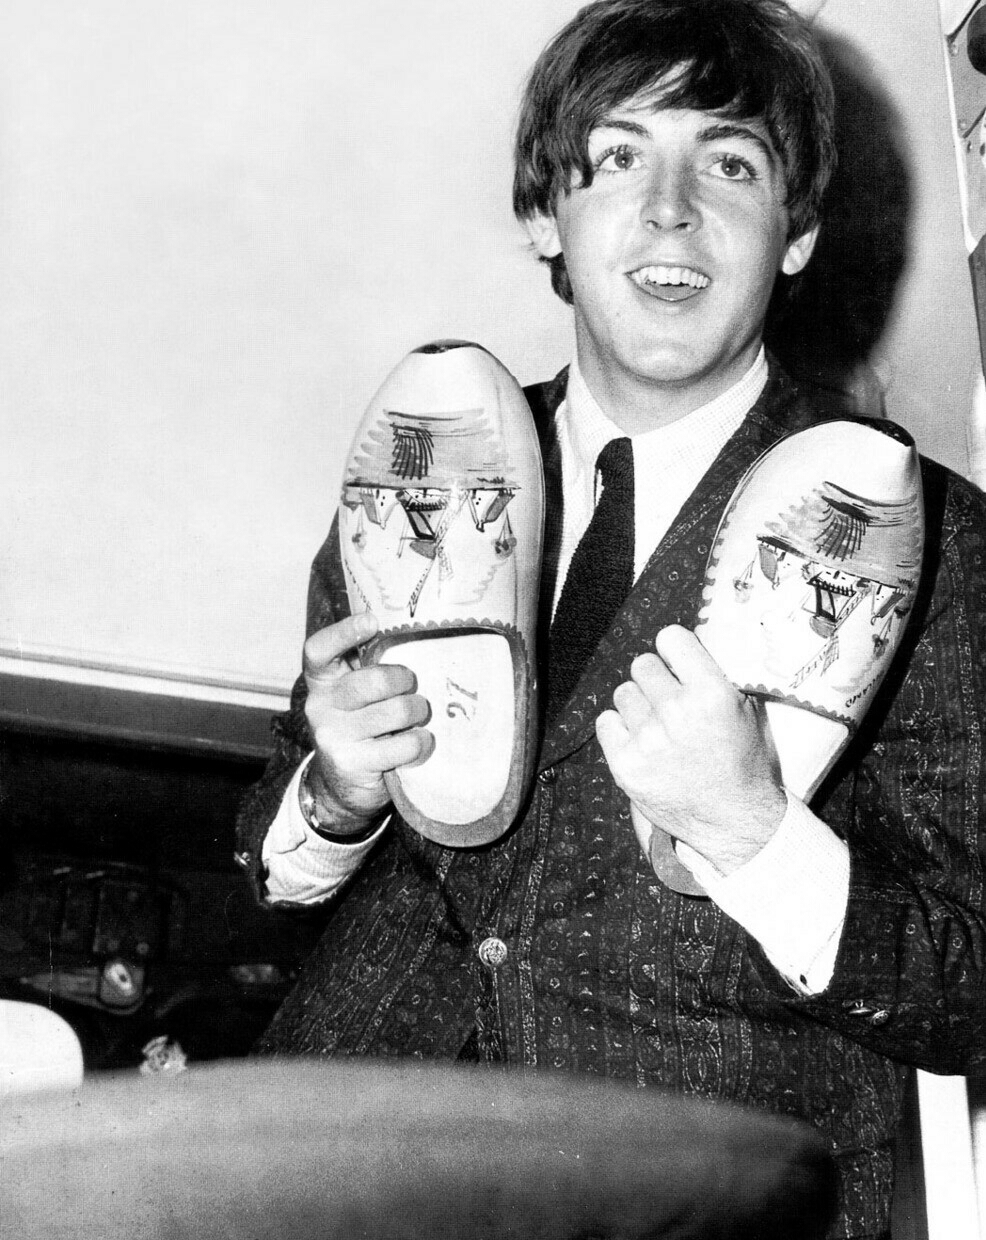 Paul McCartney with a pair of clogs, circa 1965.